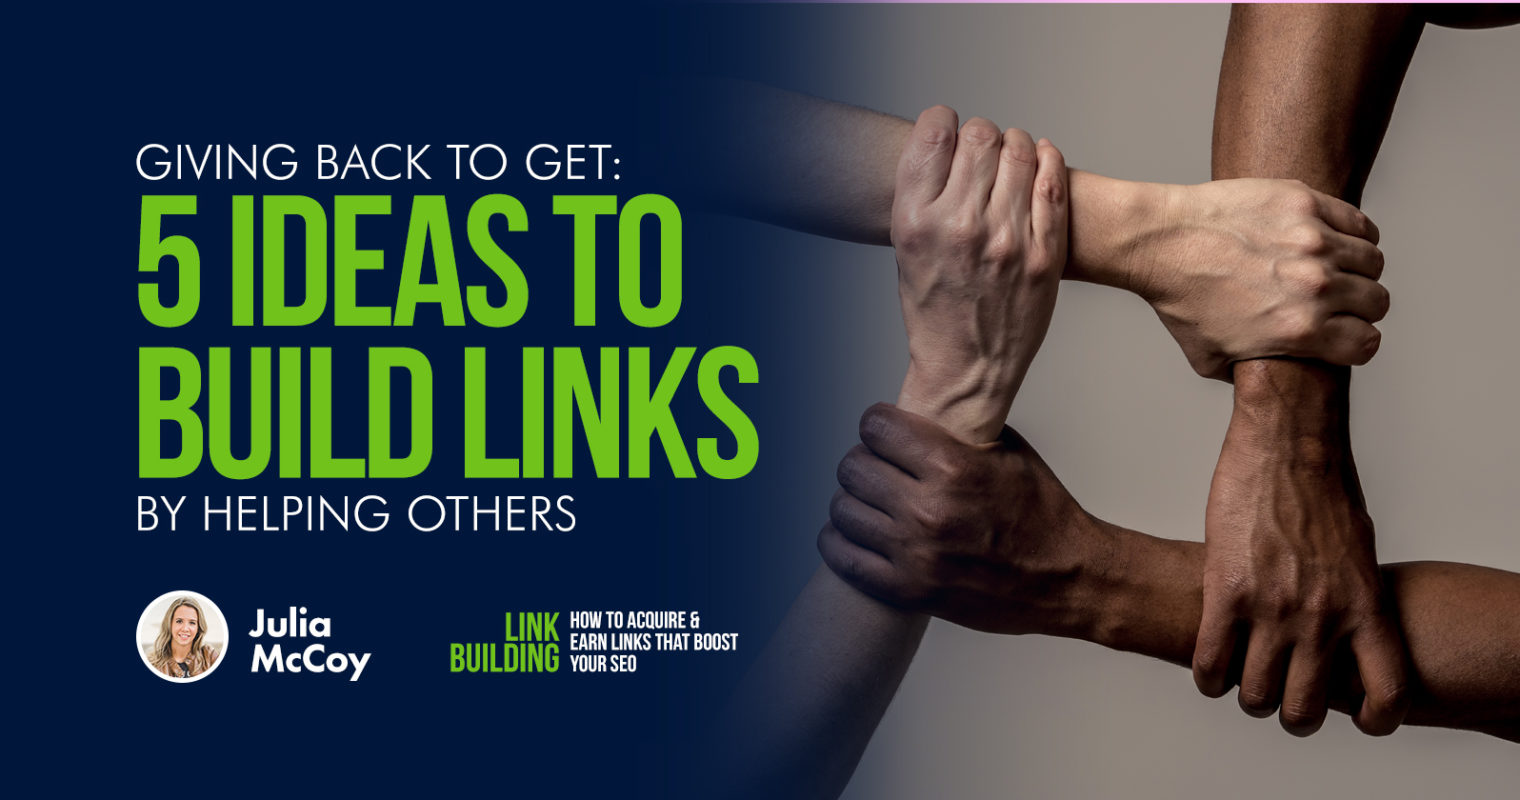 Giving Back to Get: 5 Ideas to Build Links by Helping Others